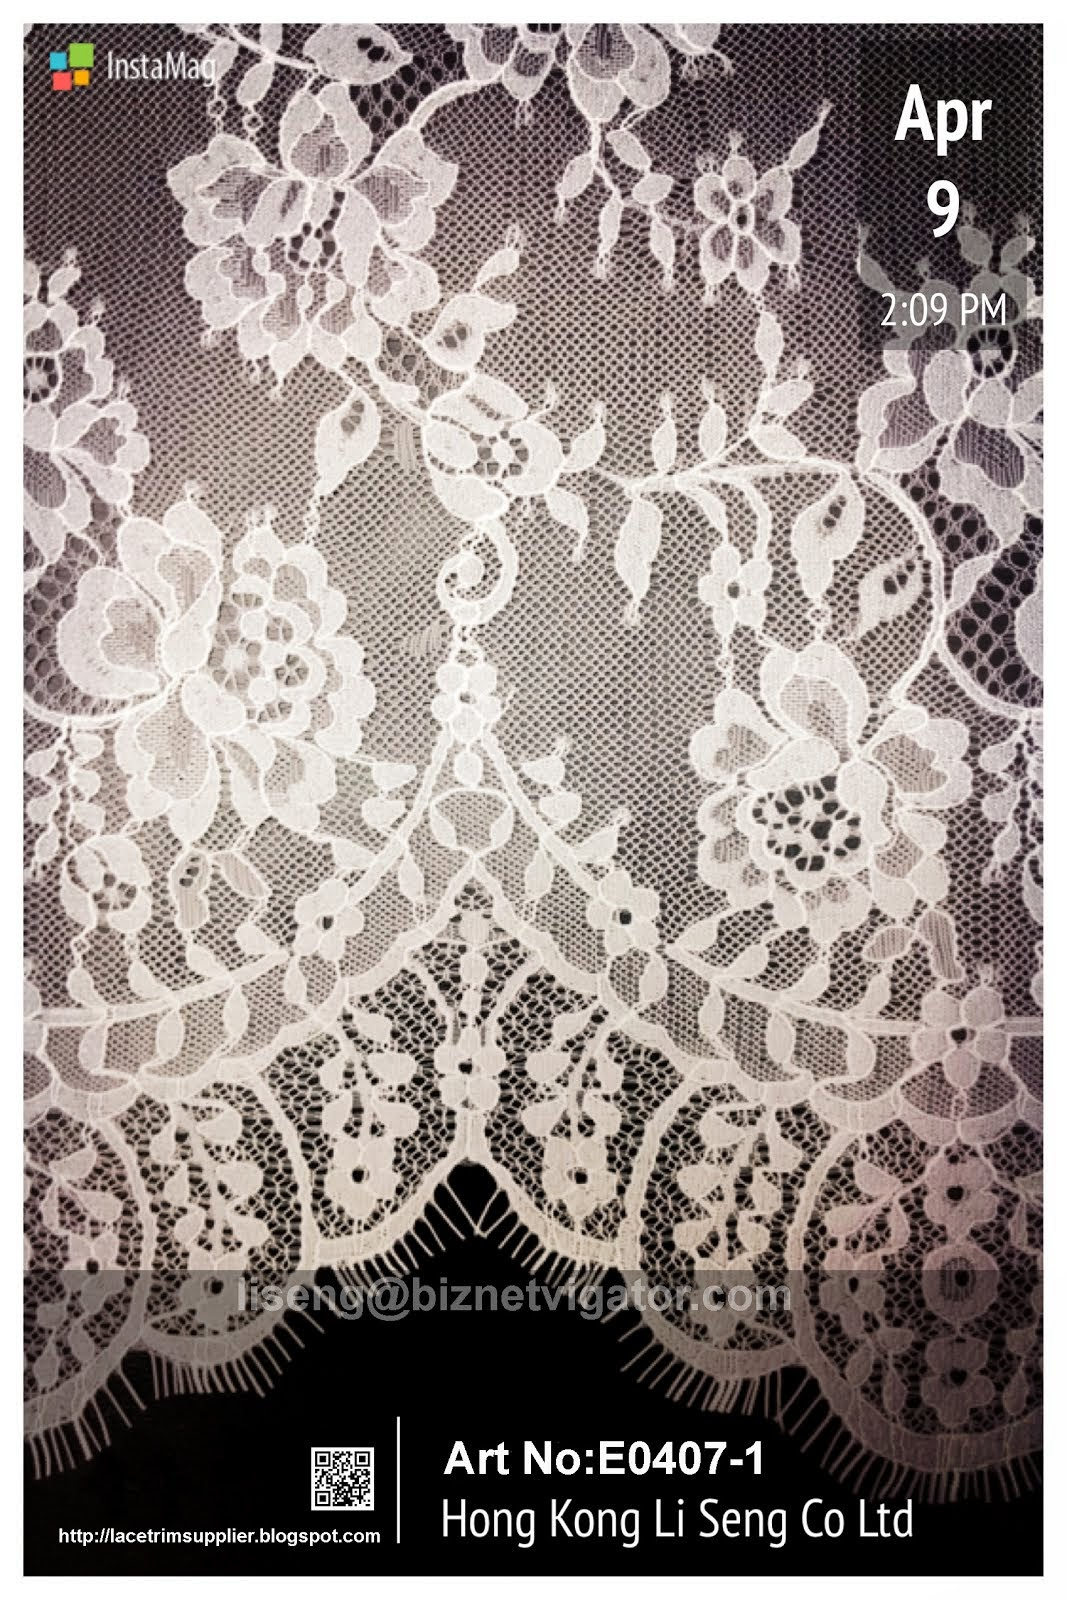 Eyelash Mesh Lace Fabric Manufacturer and Supplier - Hong Kong Li Seng Co Ltd